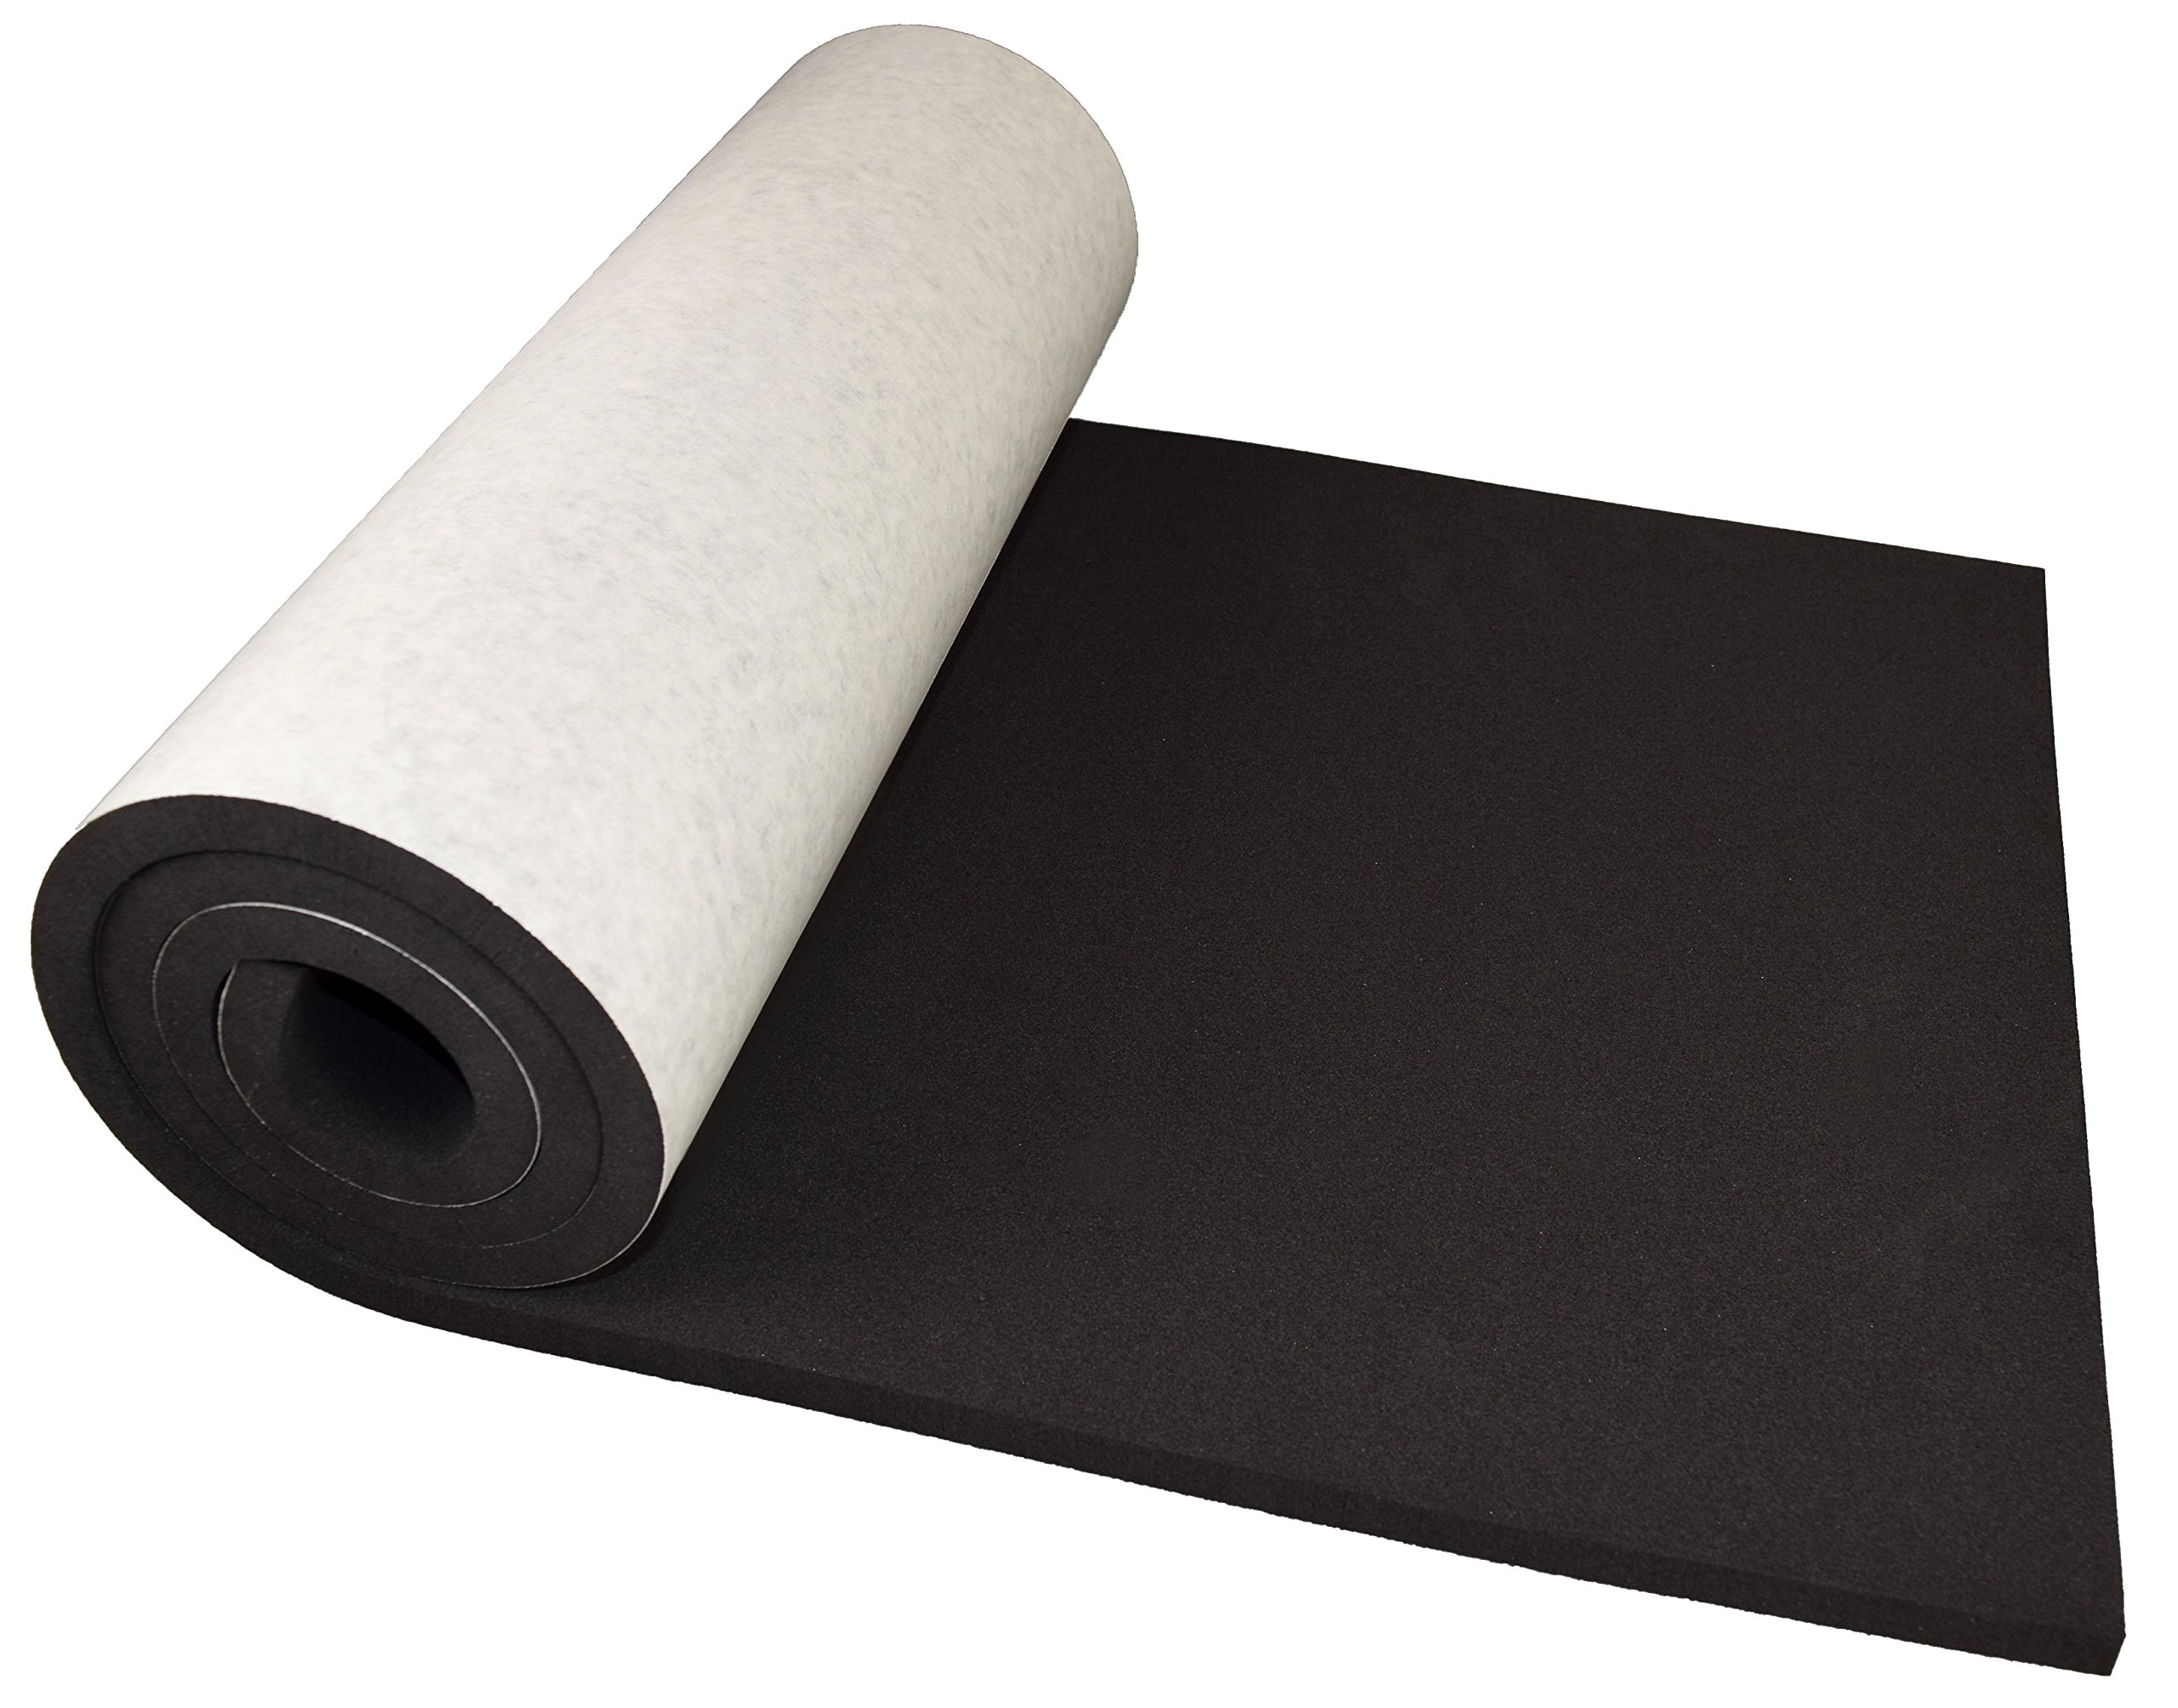 XCEL Extra Large Marine Roll, Closed Cell Neoprene Rubber with Adhesive, Size 60'' x 16'' x 1/2'', Easy Cut Material, Water and Weather Resistant, Made in USA by XCEL